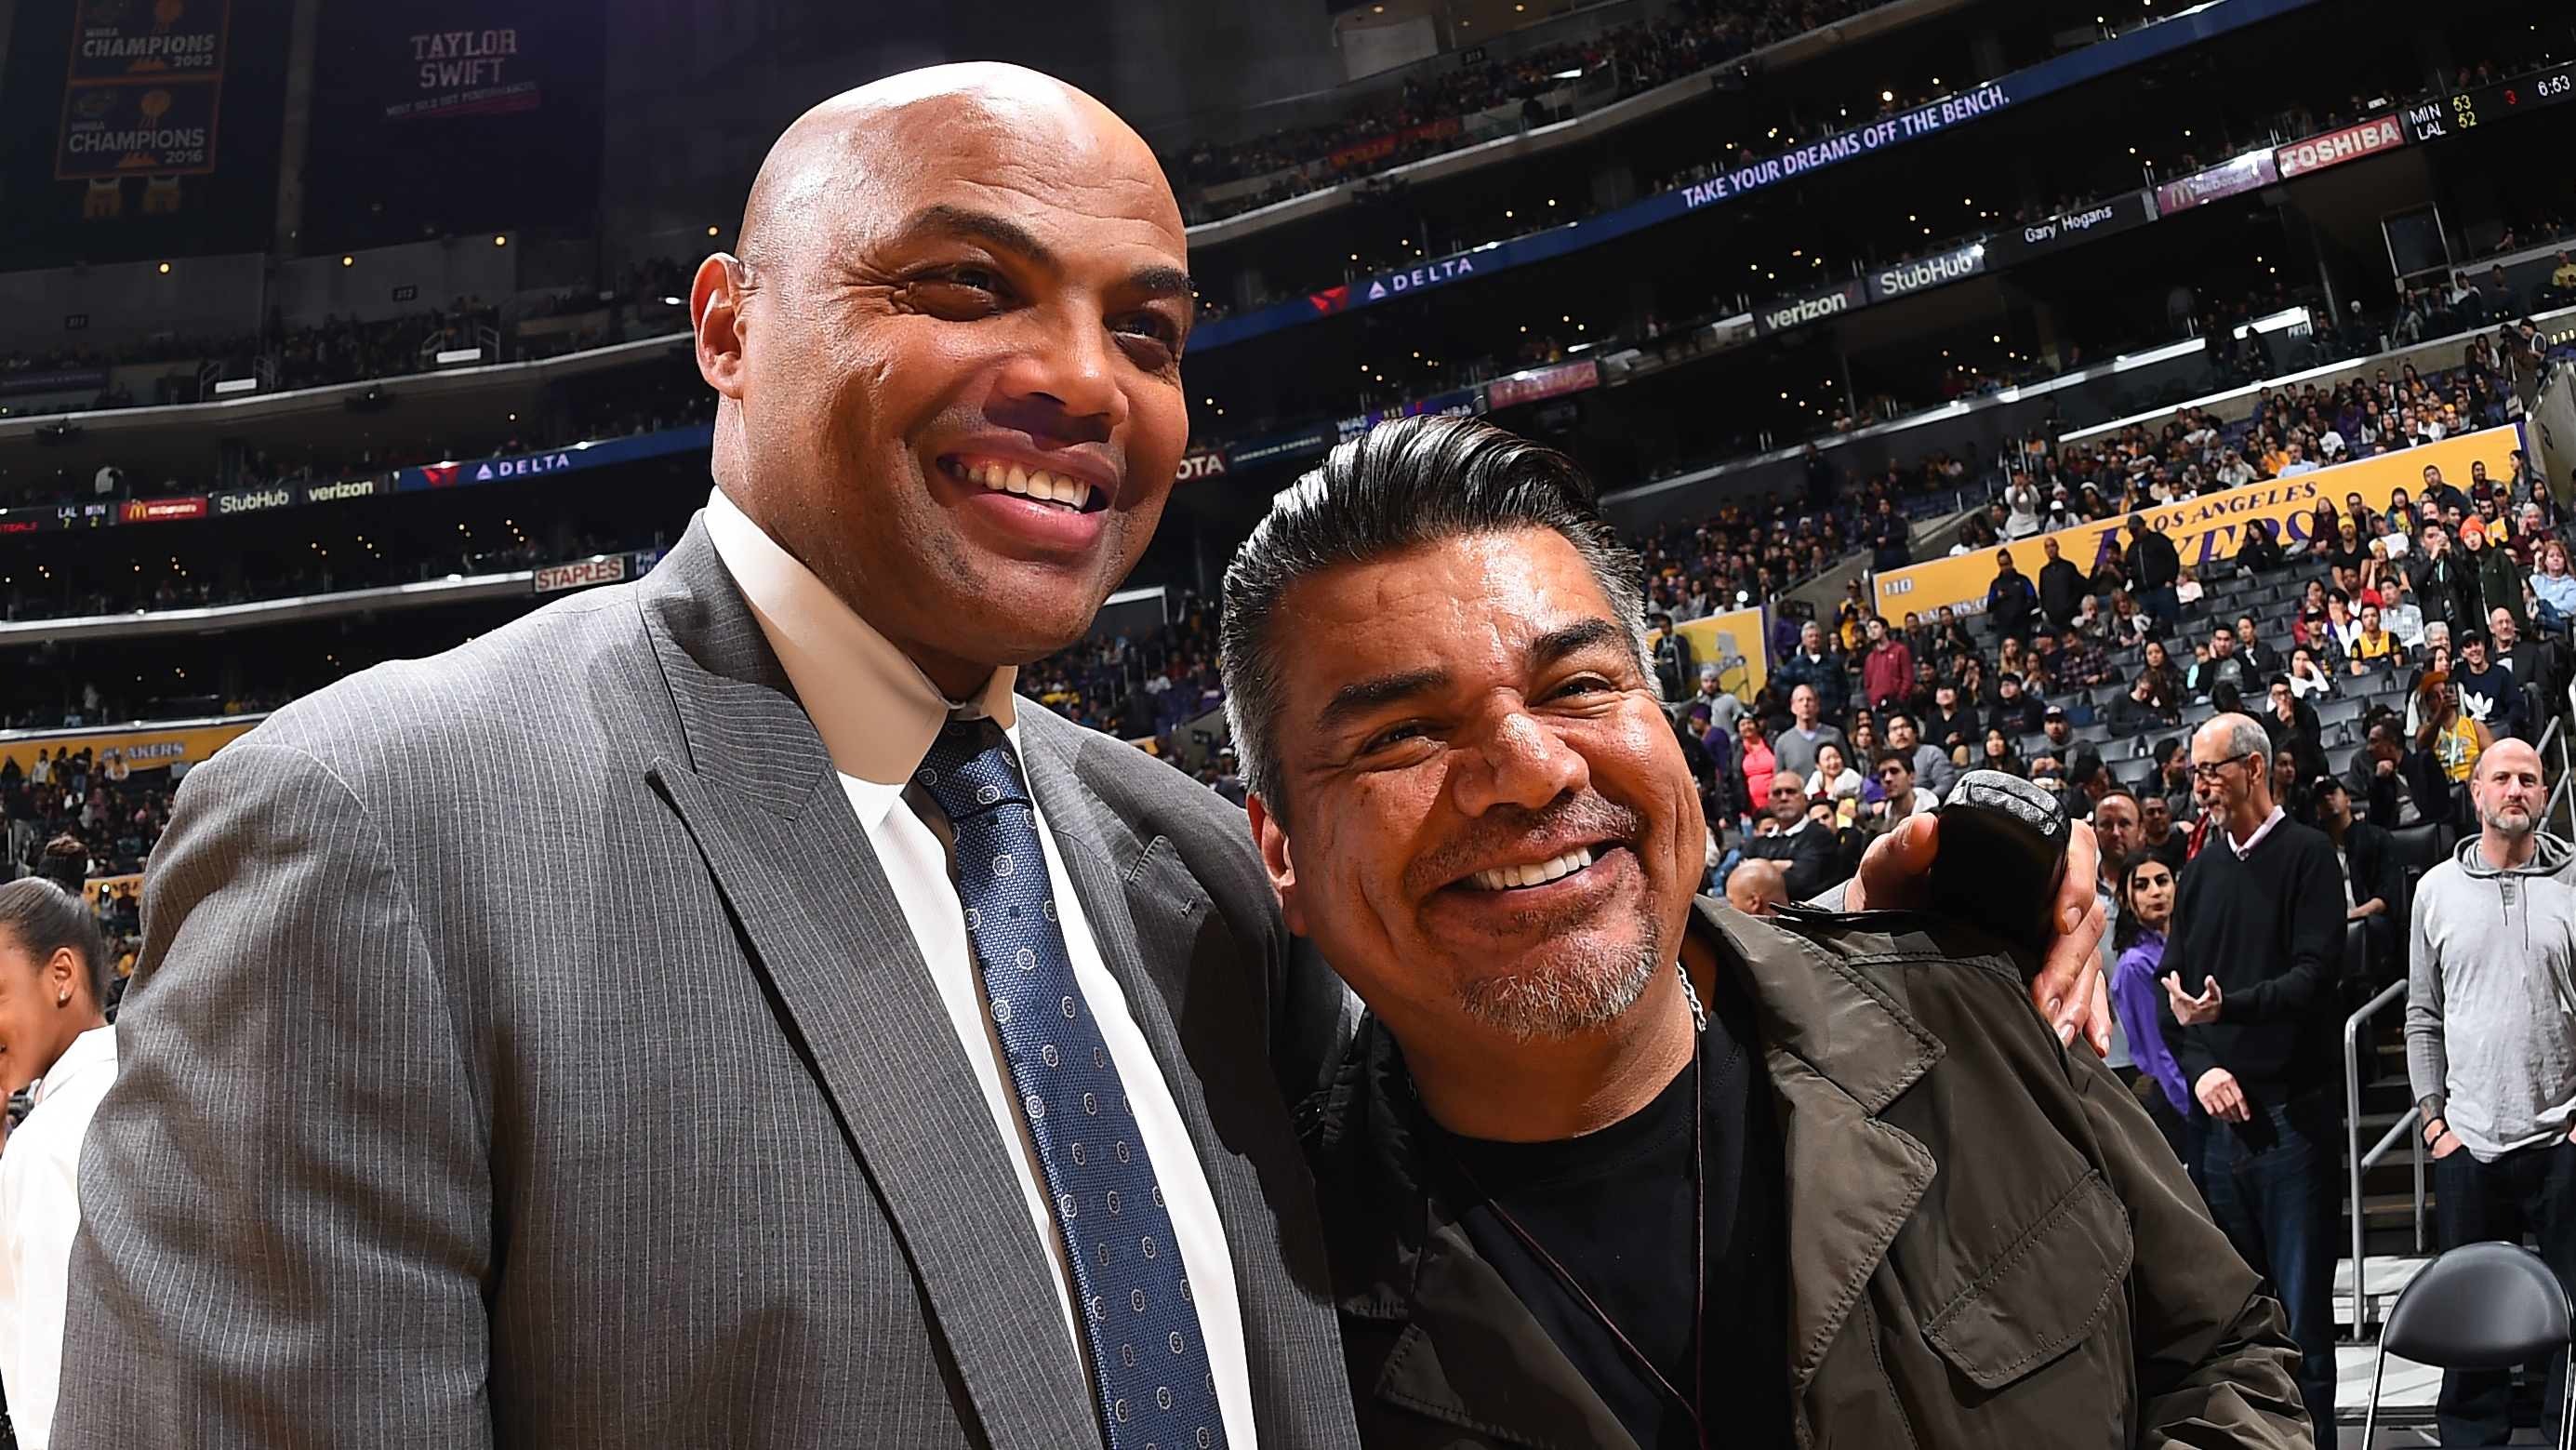 Charles Barkley to host Saturday Night Live in March